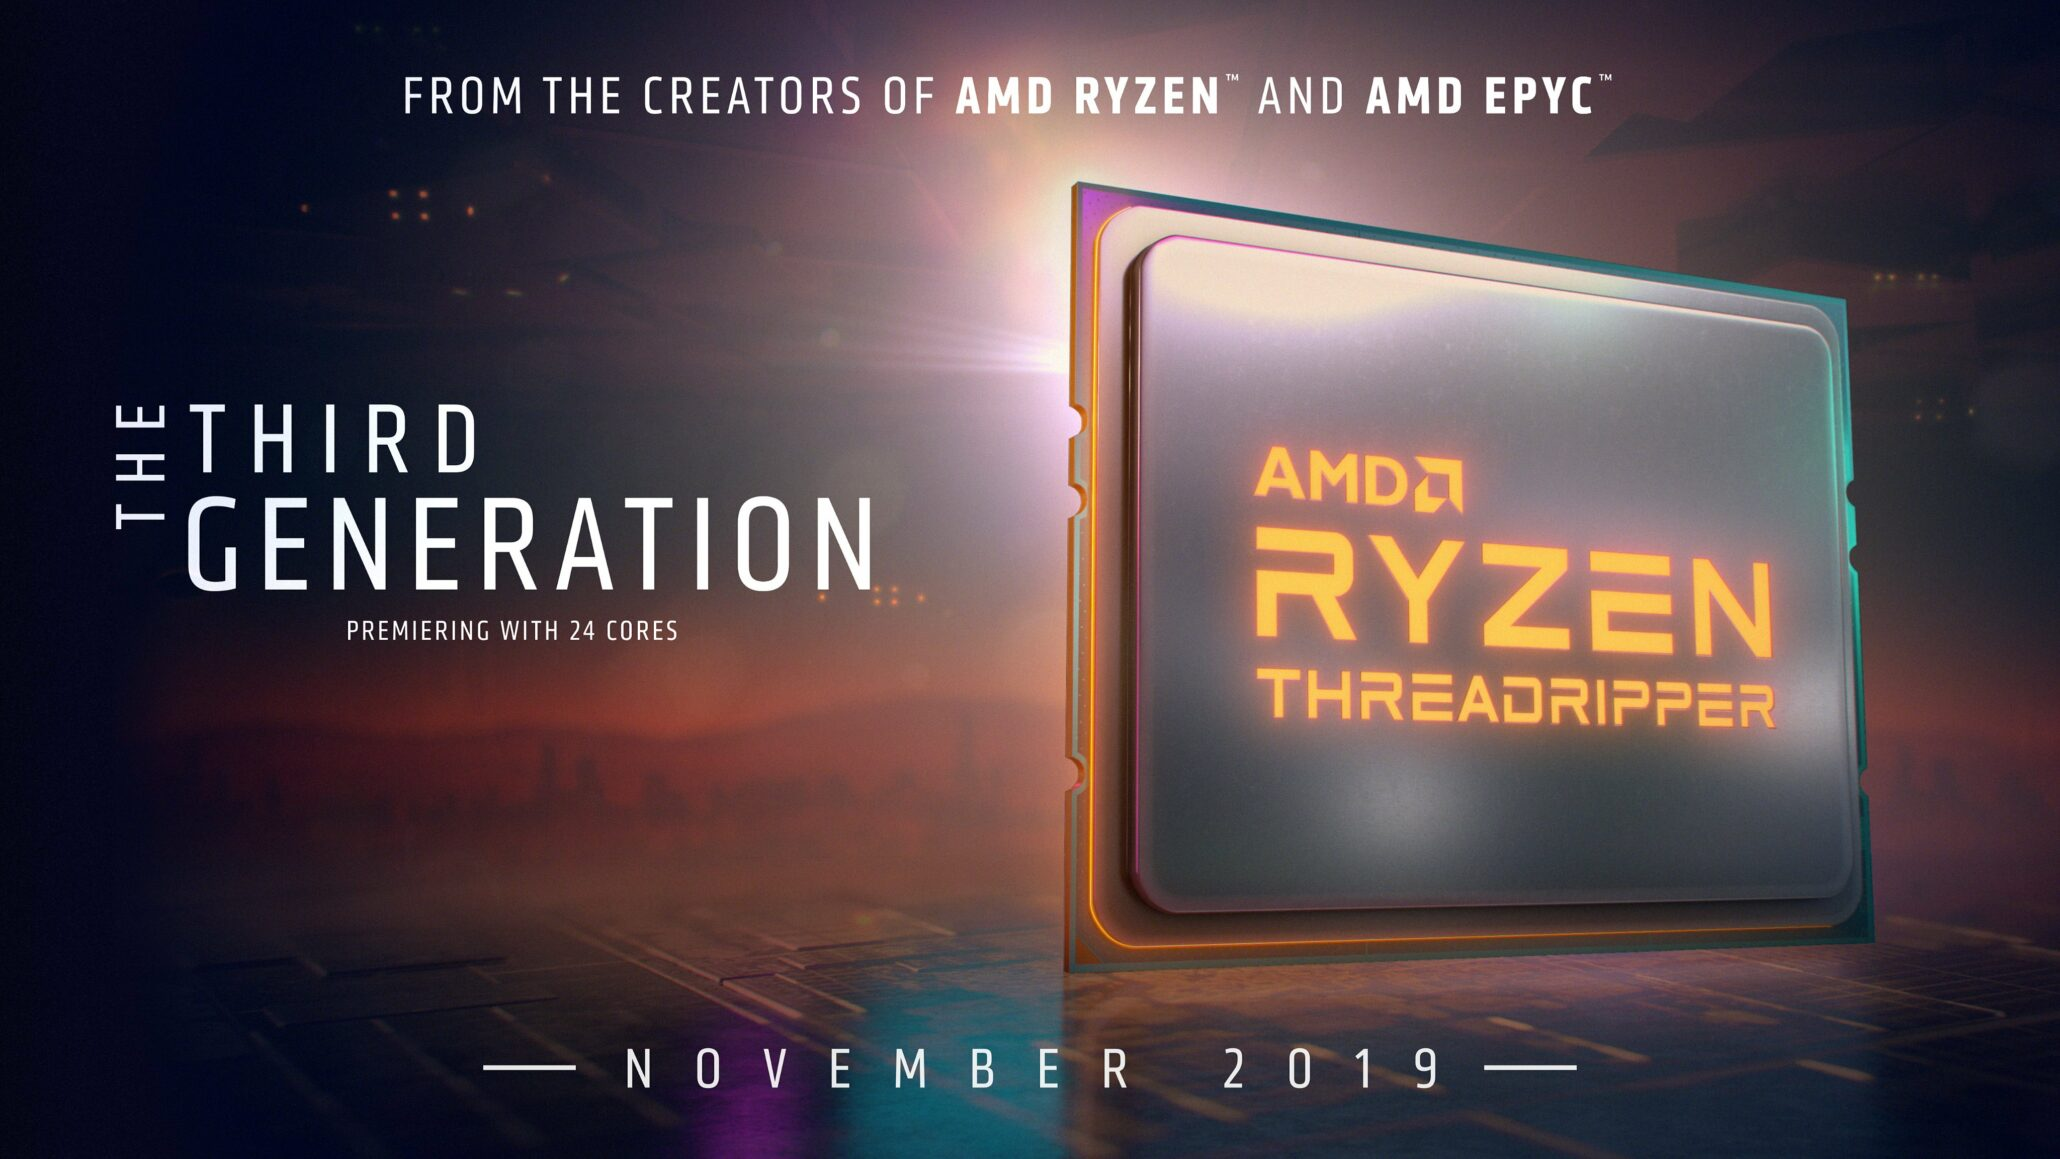 Amd Ryzen Threadripper 3970x 3960x Cpu Specs Prices Confirmed